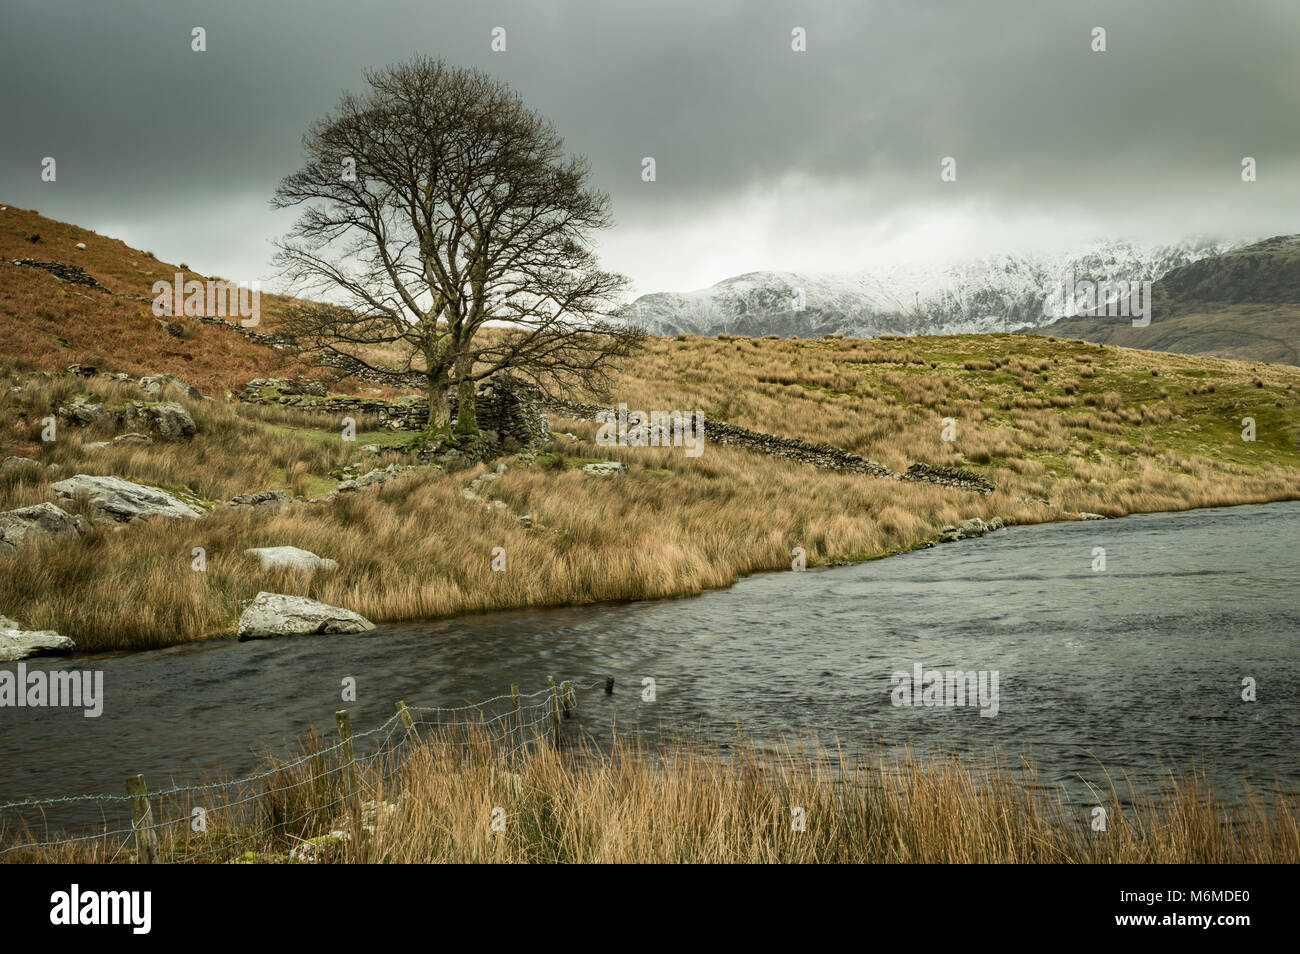 A lone tree by Llyn Dywarchen in the Snowdonia National Park, with a submerged fence and ruined farm wall. A foreboding - Stock Image